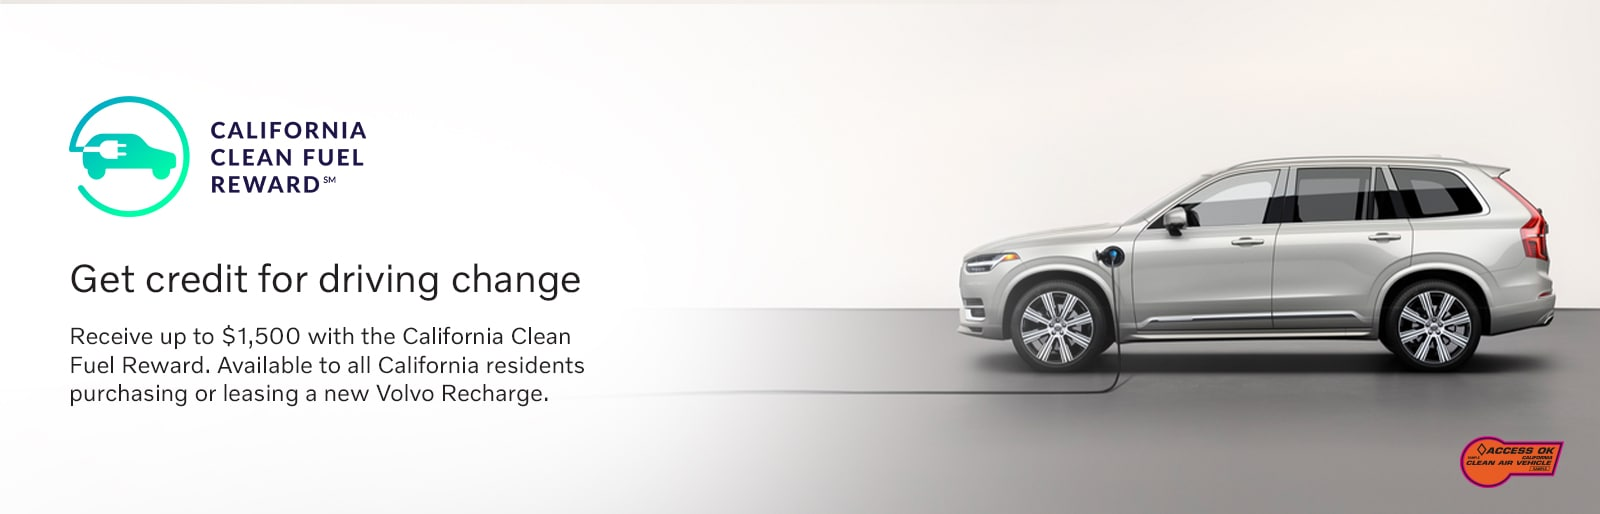 Get the California Clean Fuel Reward Cash on hybrid and electric Volvos at Culver City Volvo Cars